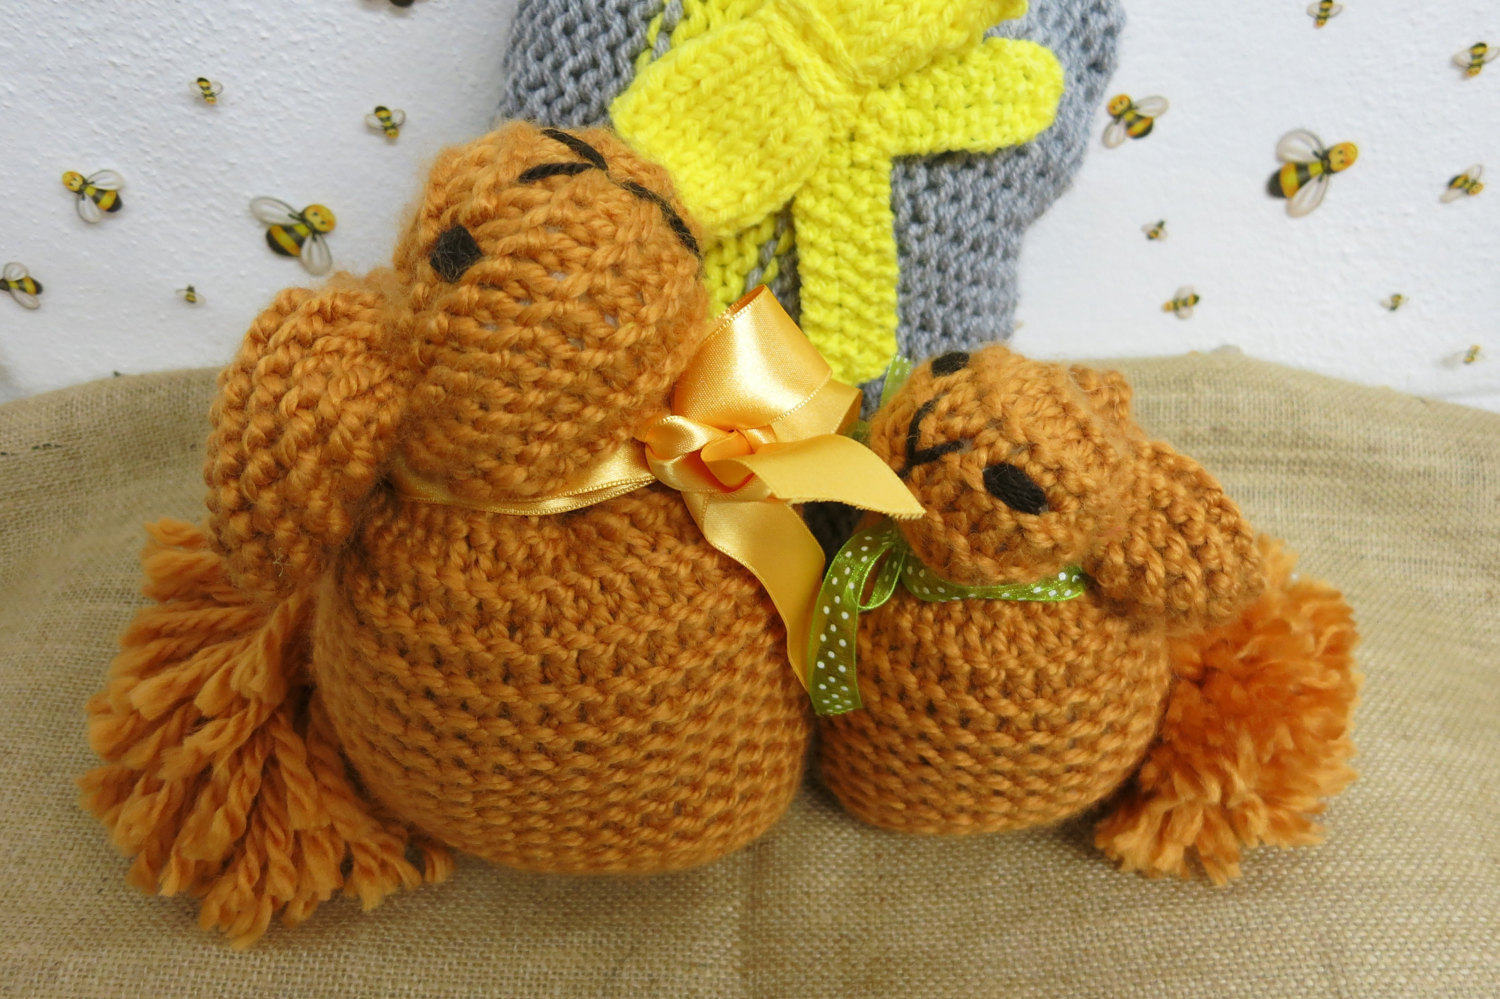 Handmade bunny stuffed toy- knitted toy-nursery decoration-birthday gift